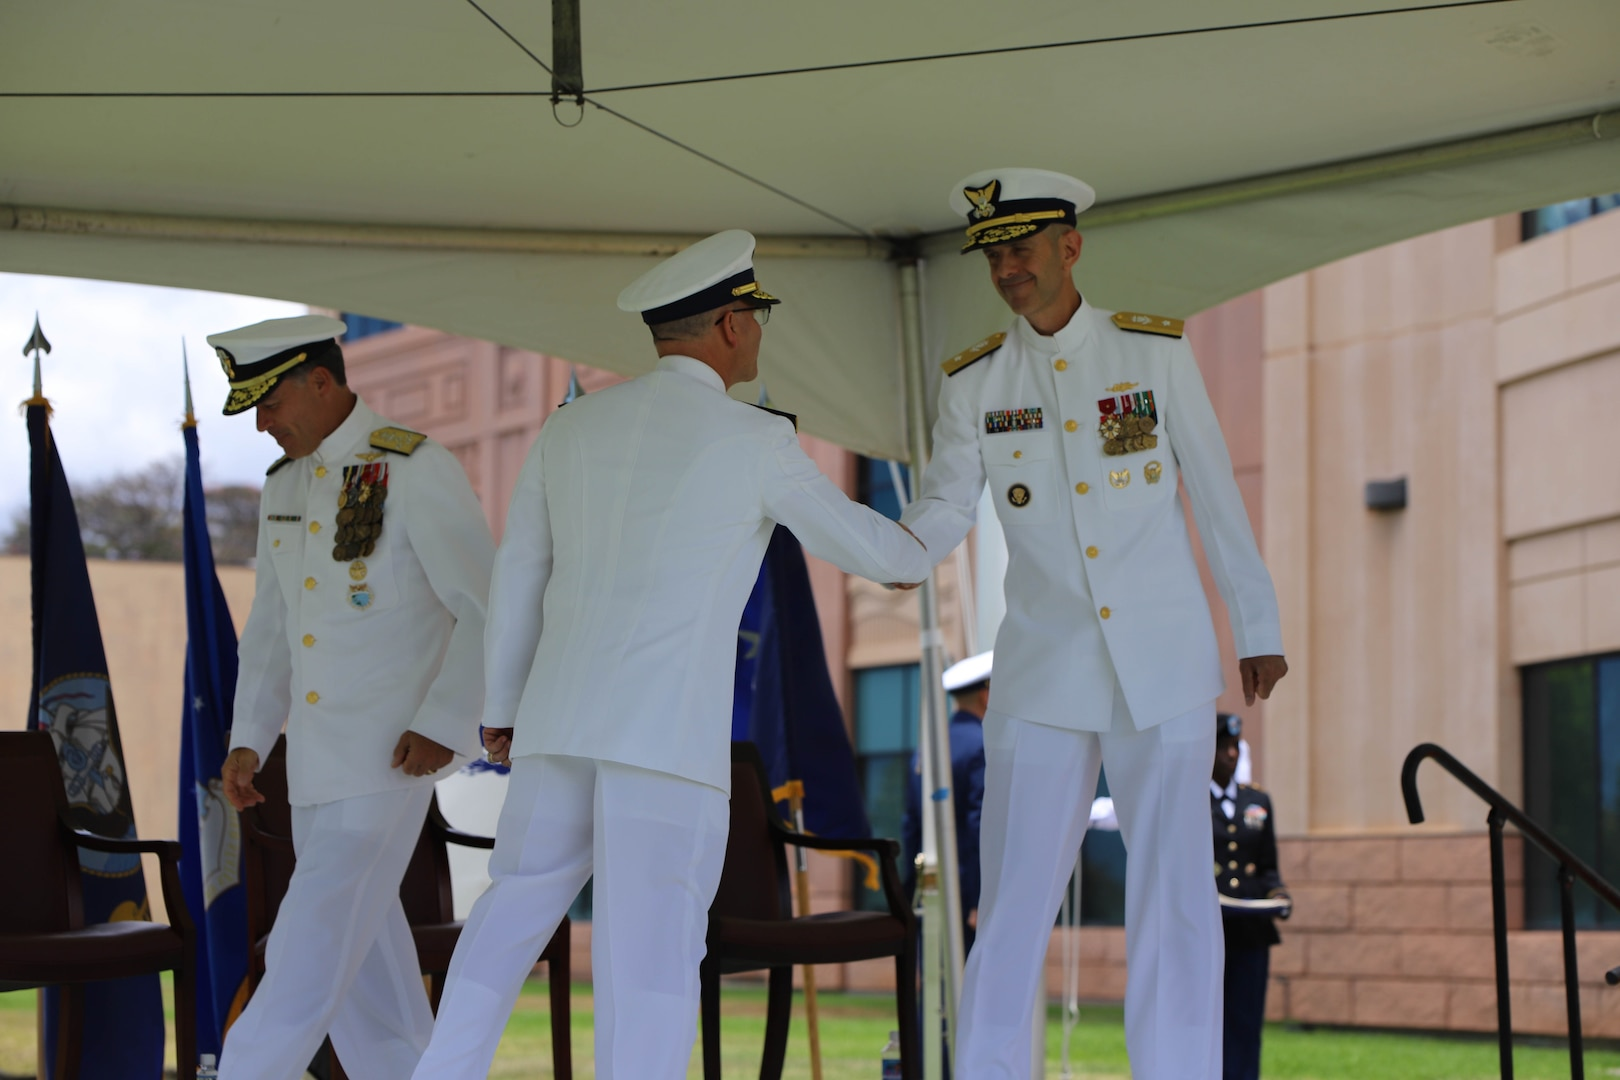 Camp H.M. Smith, Hawaii (June 25, 2021) Rear Admiral Charles Fosse, left, relieves Rear Admiral Robert Hayes, right, as Director of Joint Interagency Task Force West (JIATF West). Fosse becomes the 19th director of JIATF West, the executive agent for counter narcotics within the Indo-Pacific Command (INDOPACOM) area of operation.  As the JIATF West director, he is charged with leading more than 140 Soldiers, Sailors, Marines, Airmen, Coast Guardsmen, and Department of Defense civilians and is responsible for assisting U.S. law enforcement efforts in countering narcotics and the flow of illicit chemicals bound for the Western Hemisphere within the Indo-Pacific.